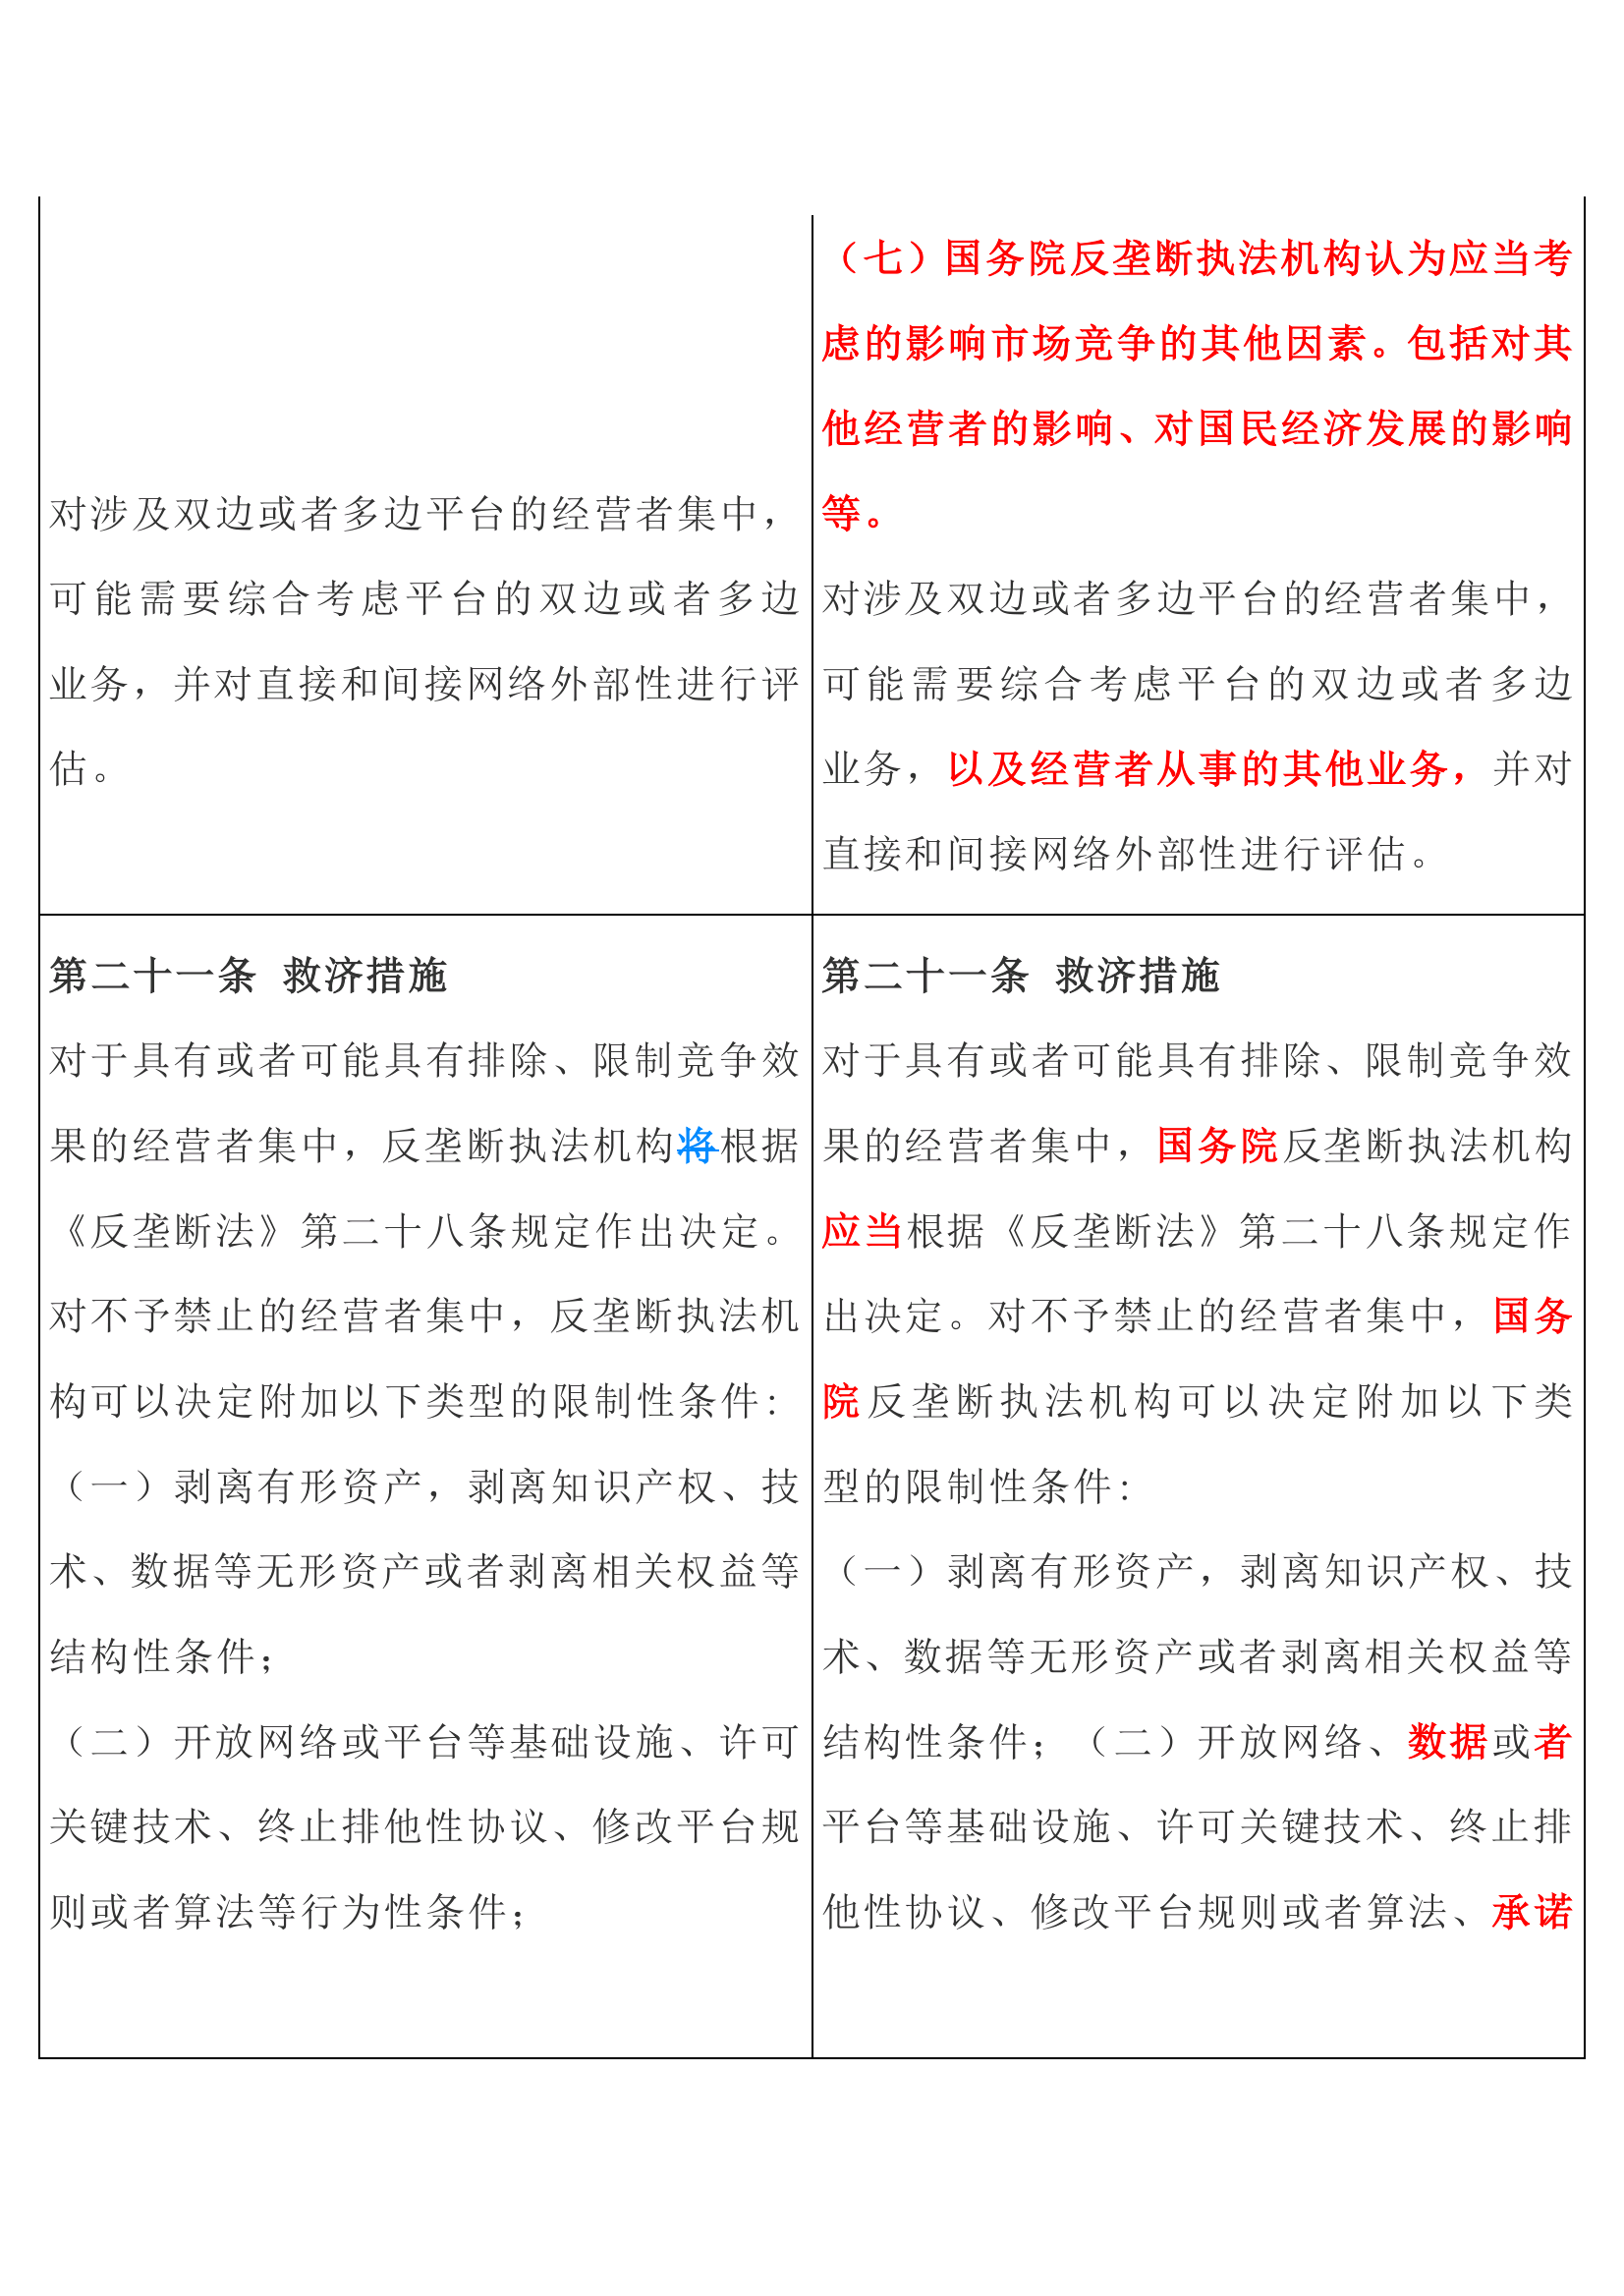 share_pdf_exportpage29(2).png